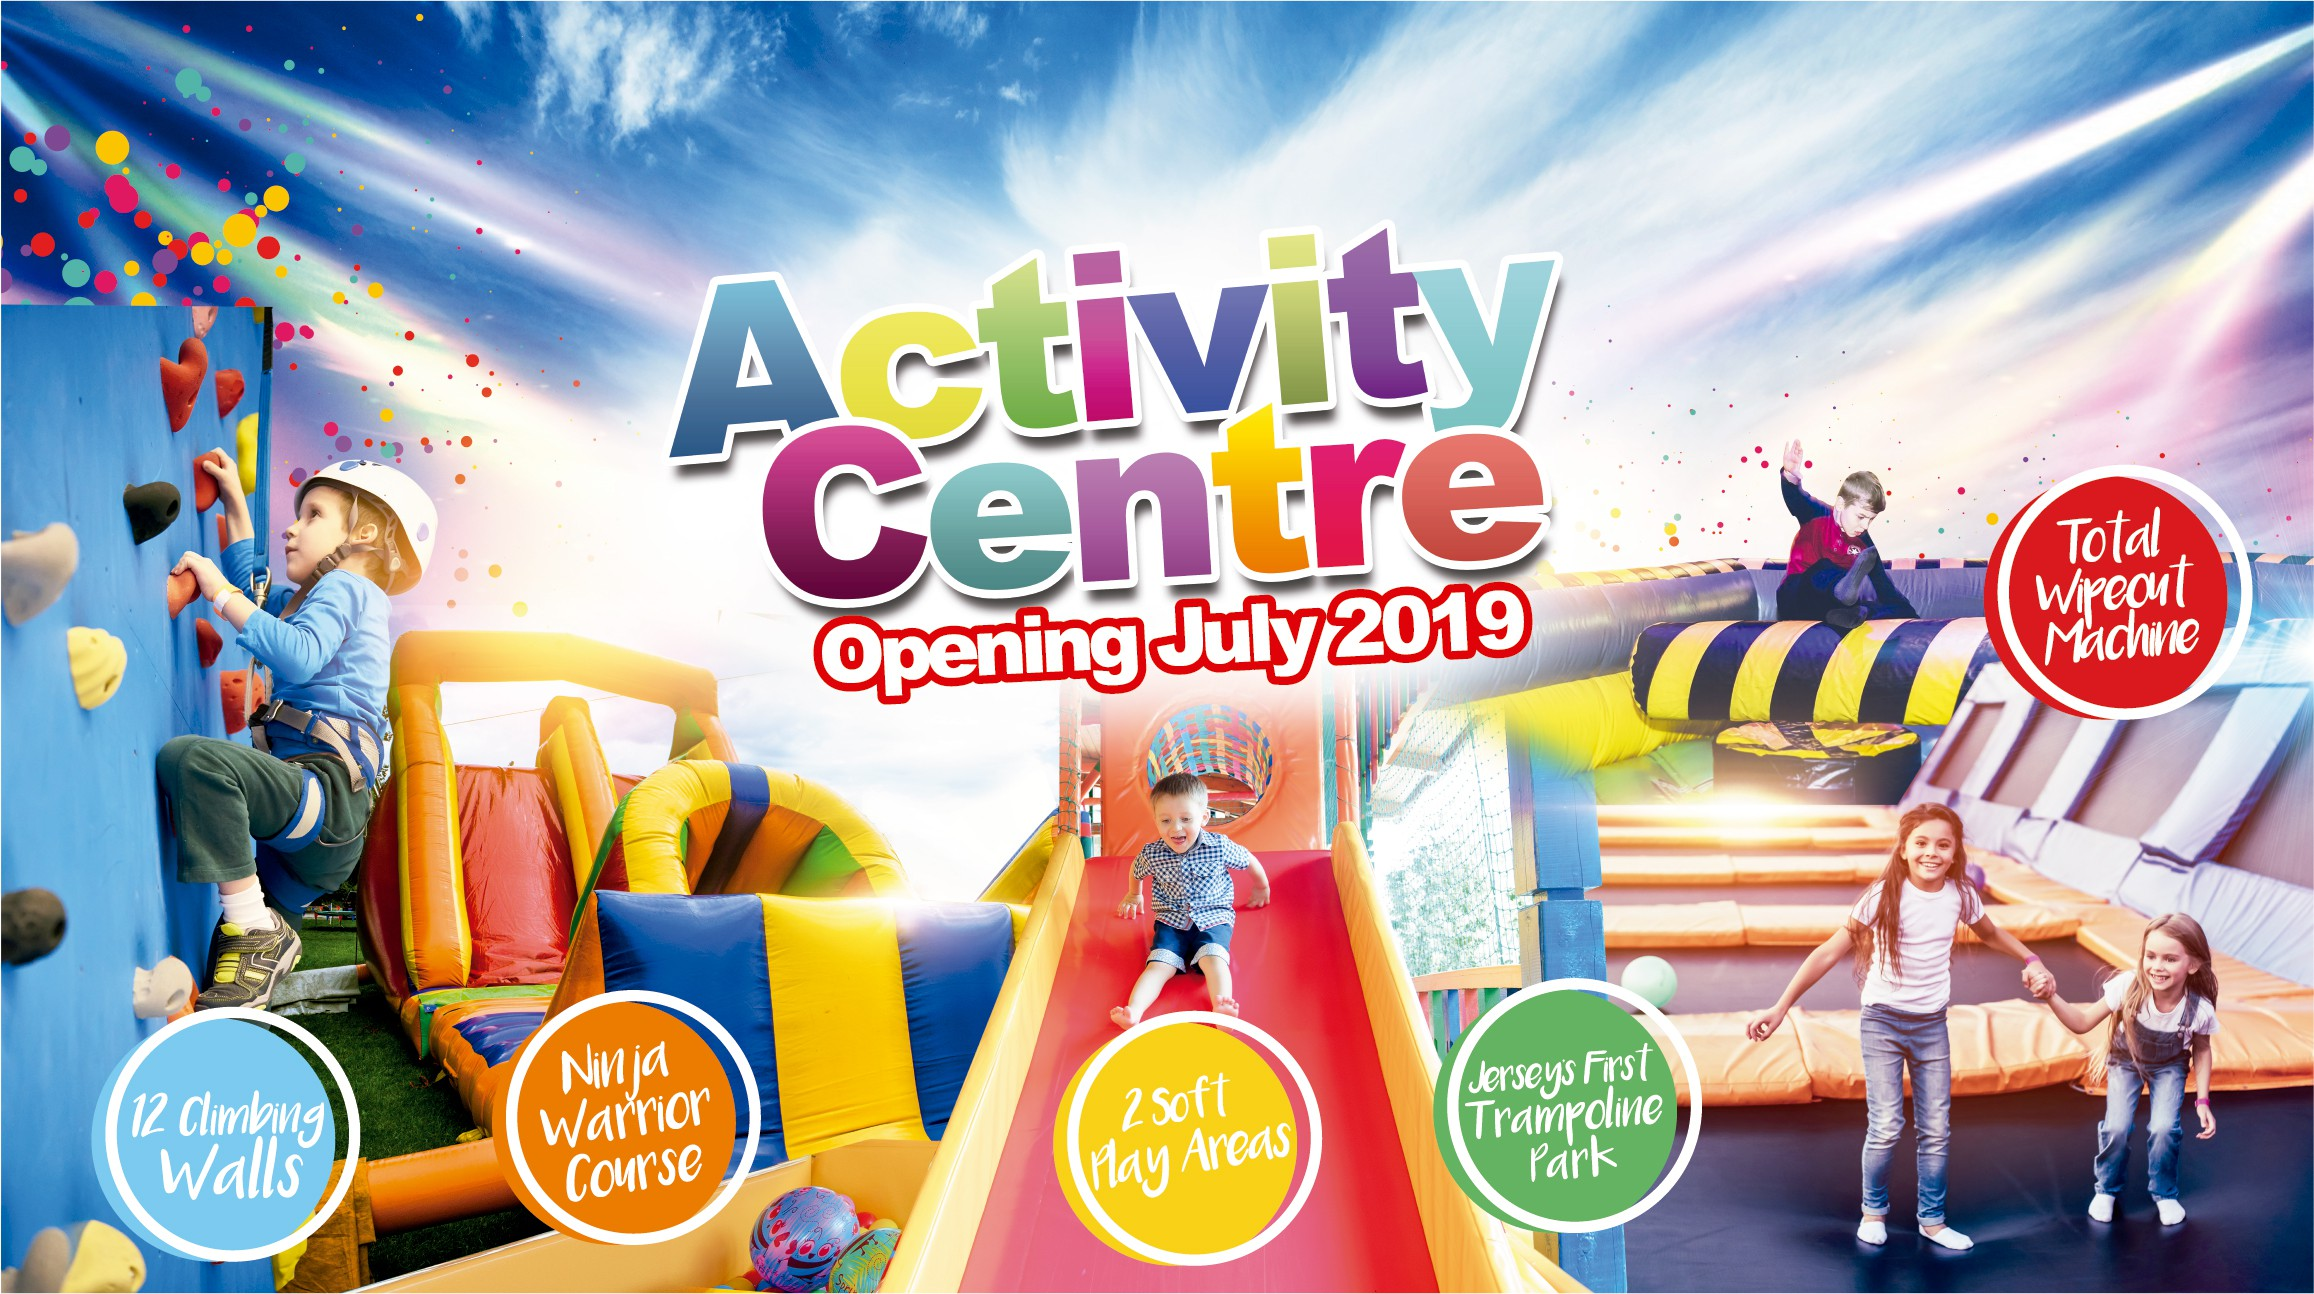 'Activity Centre' - Branding/typography & advertising signage